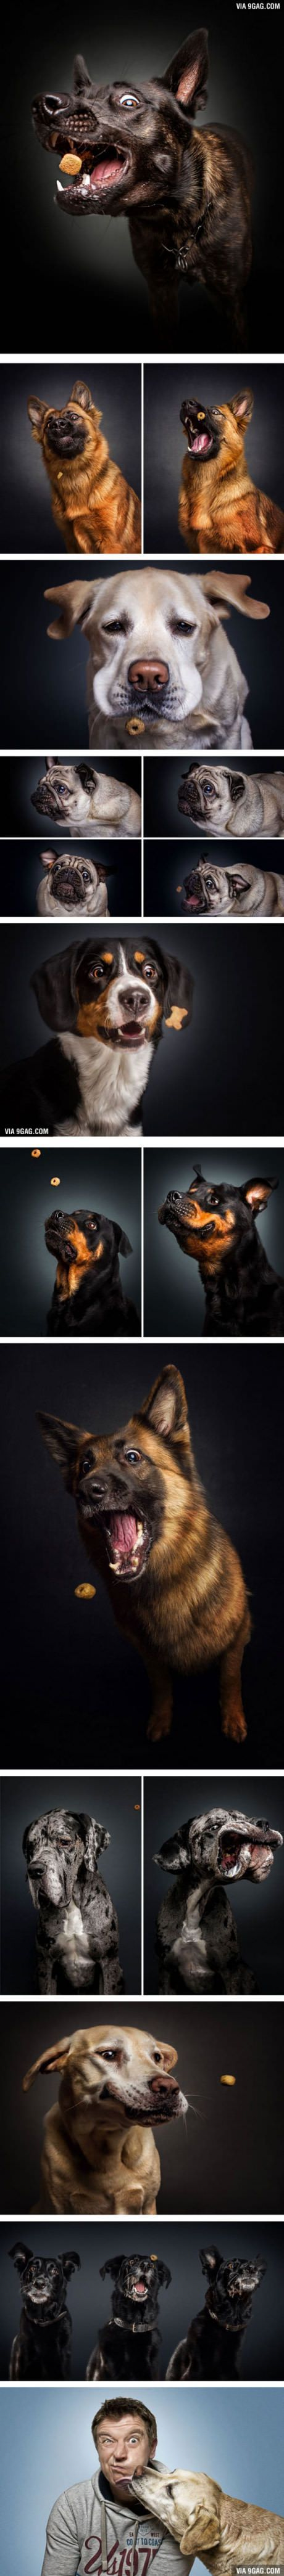 Photographer Captures Hungry Dogs' Funny Faces When They Catch Treats (By Christian Vieler) #FunnyDog